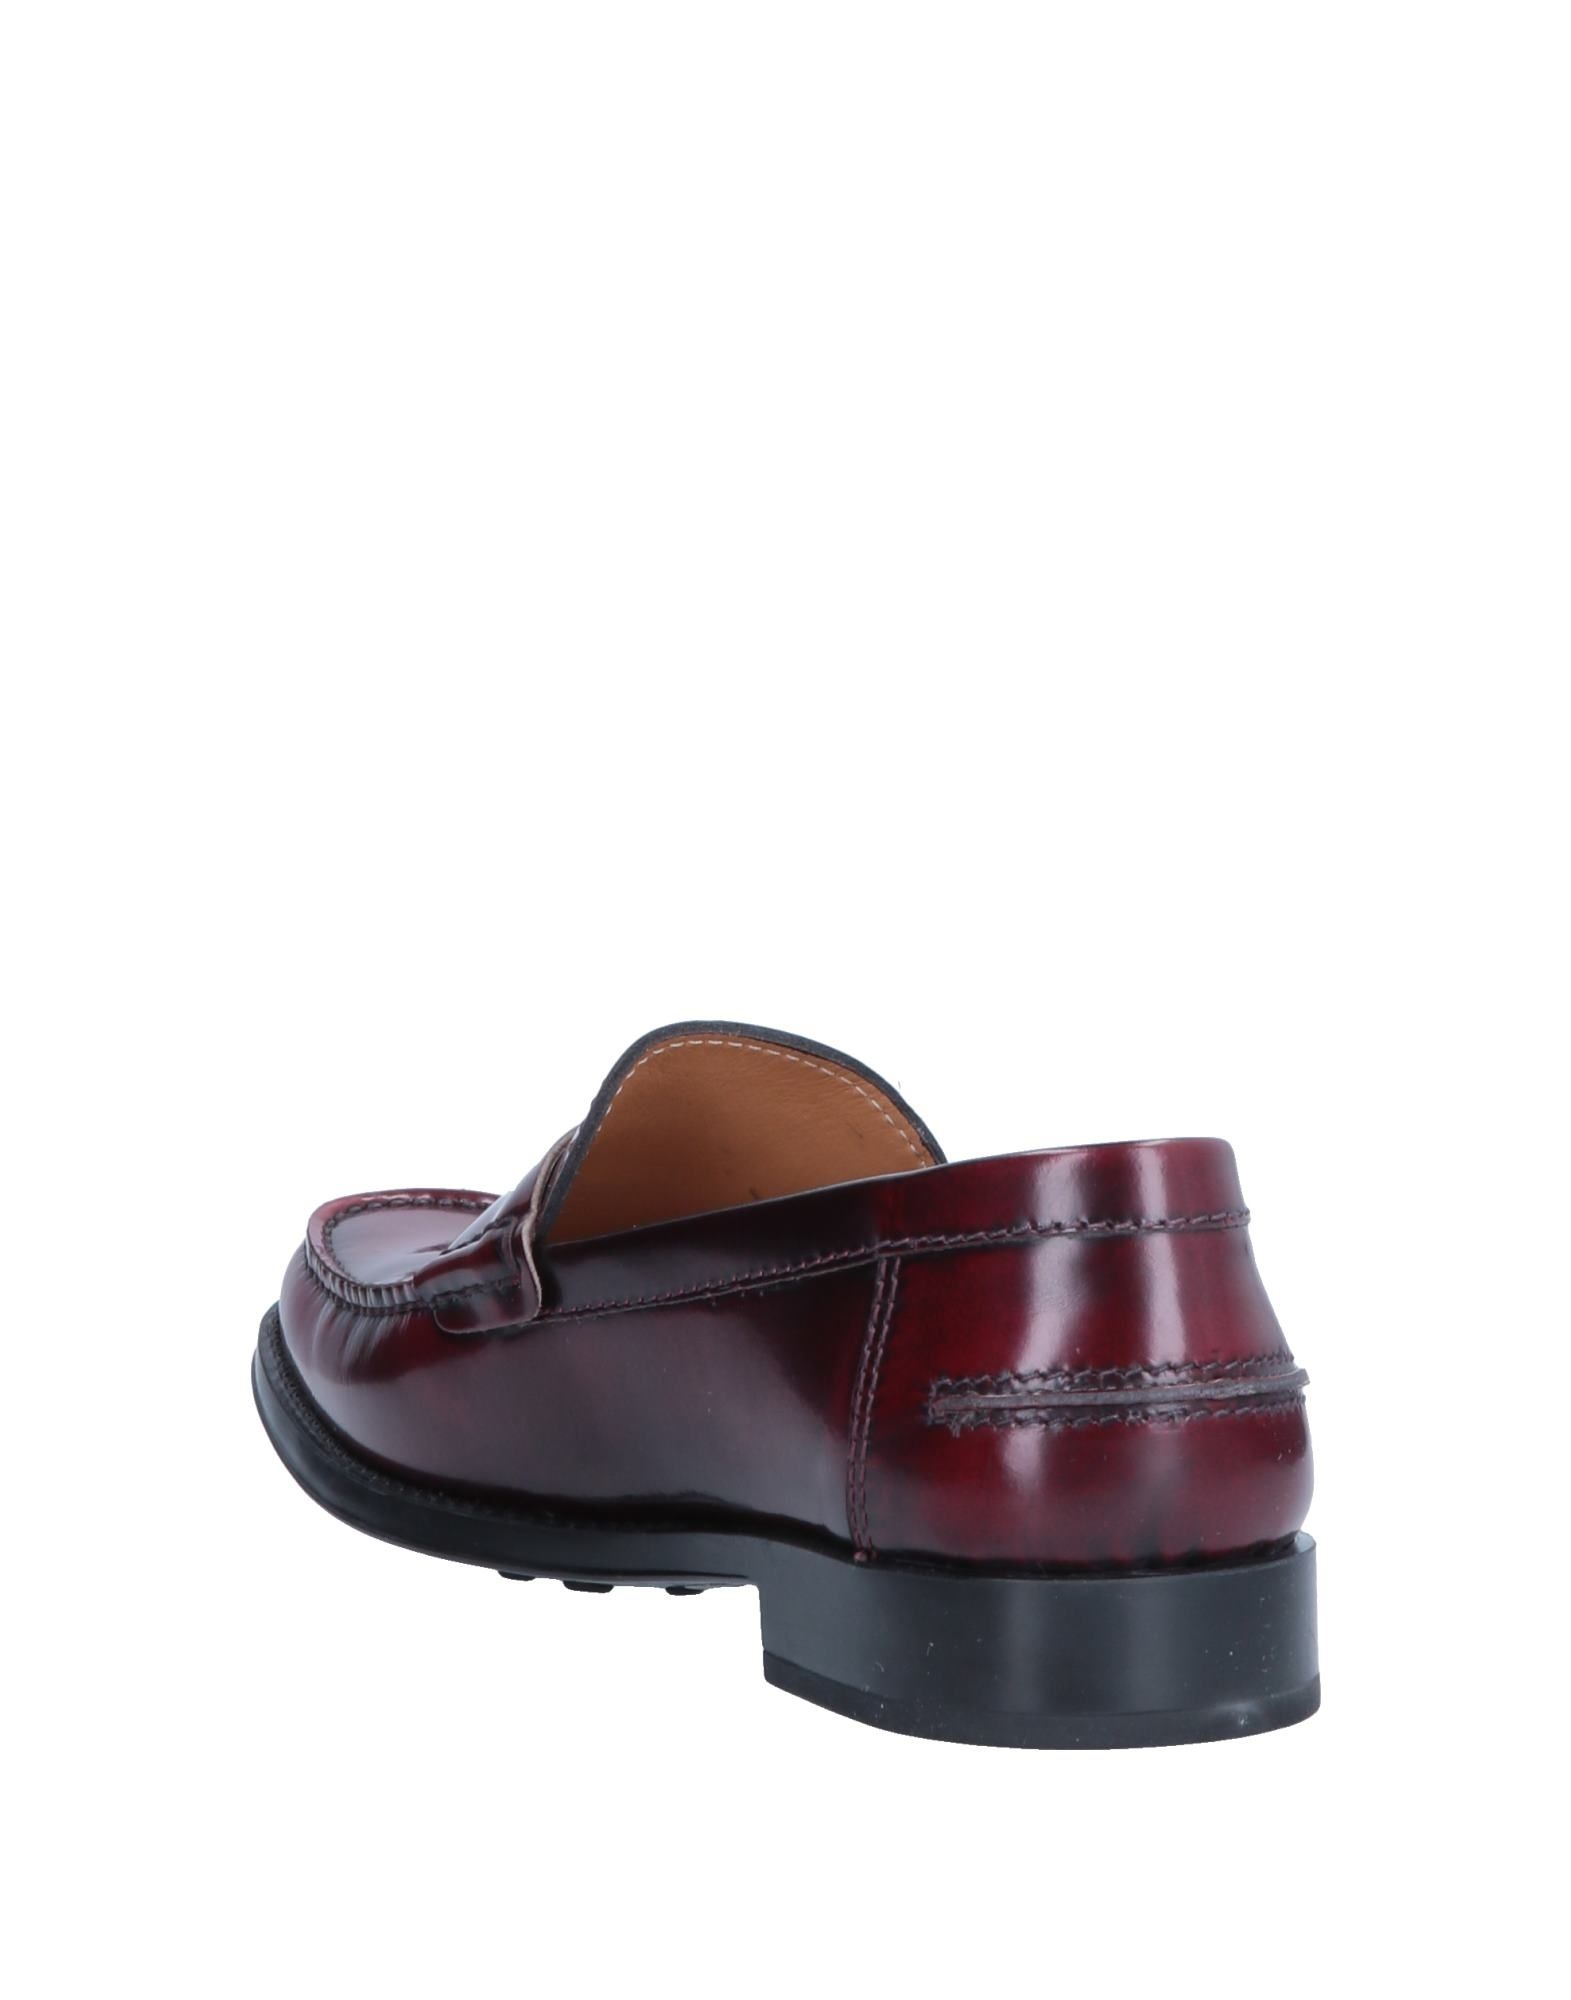 Baccaglini Loafers - Men Baccaglini Loafers Loafers Loafers online on  Canada - 11557492JX 0d830a